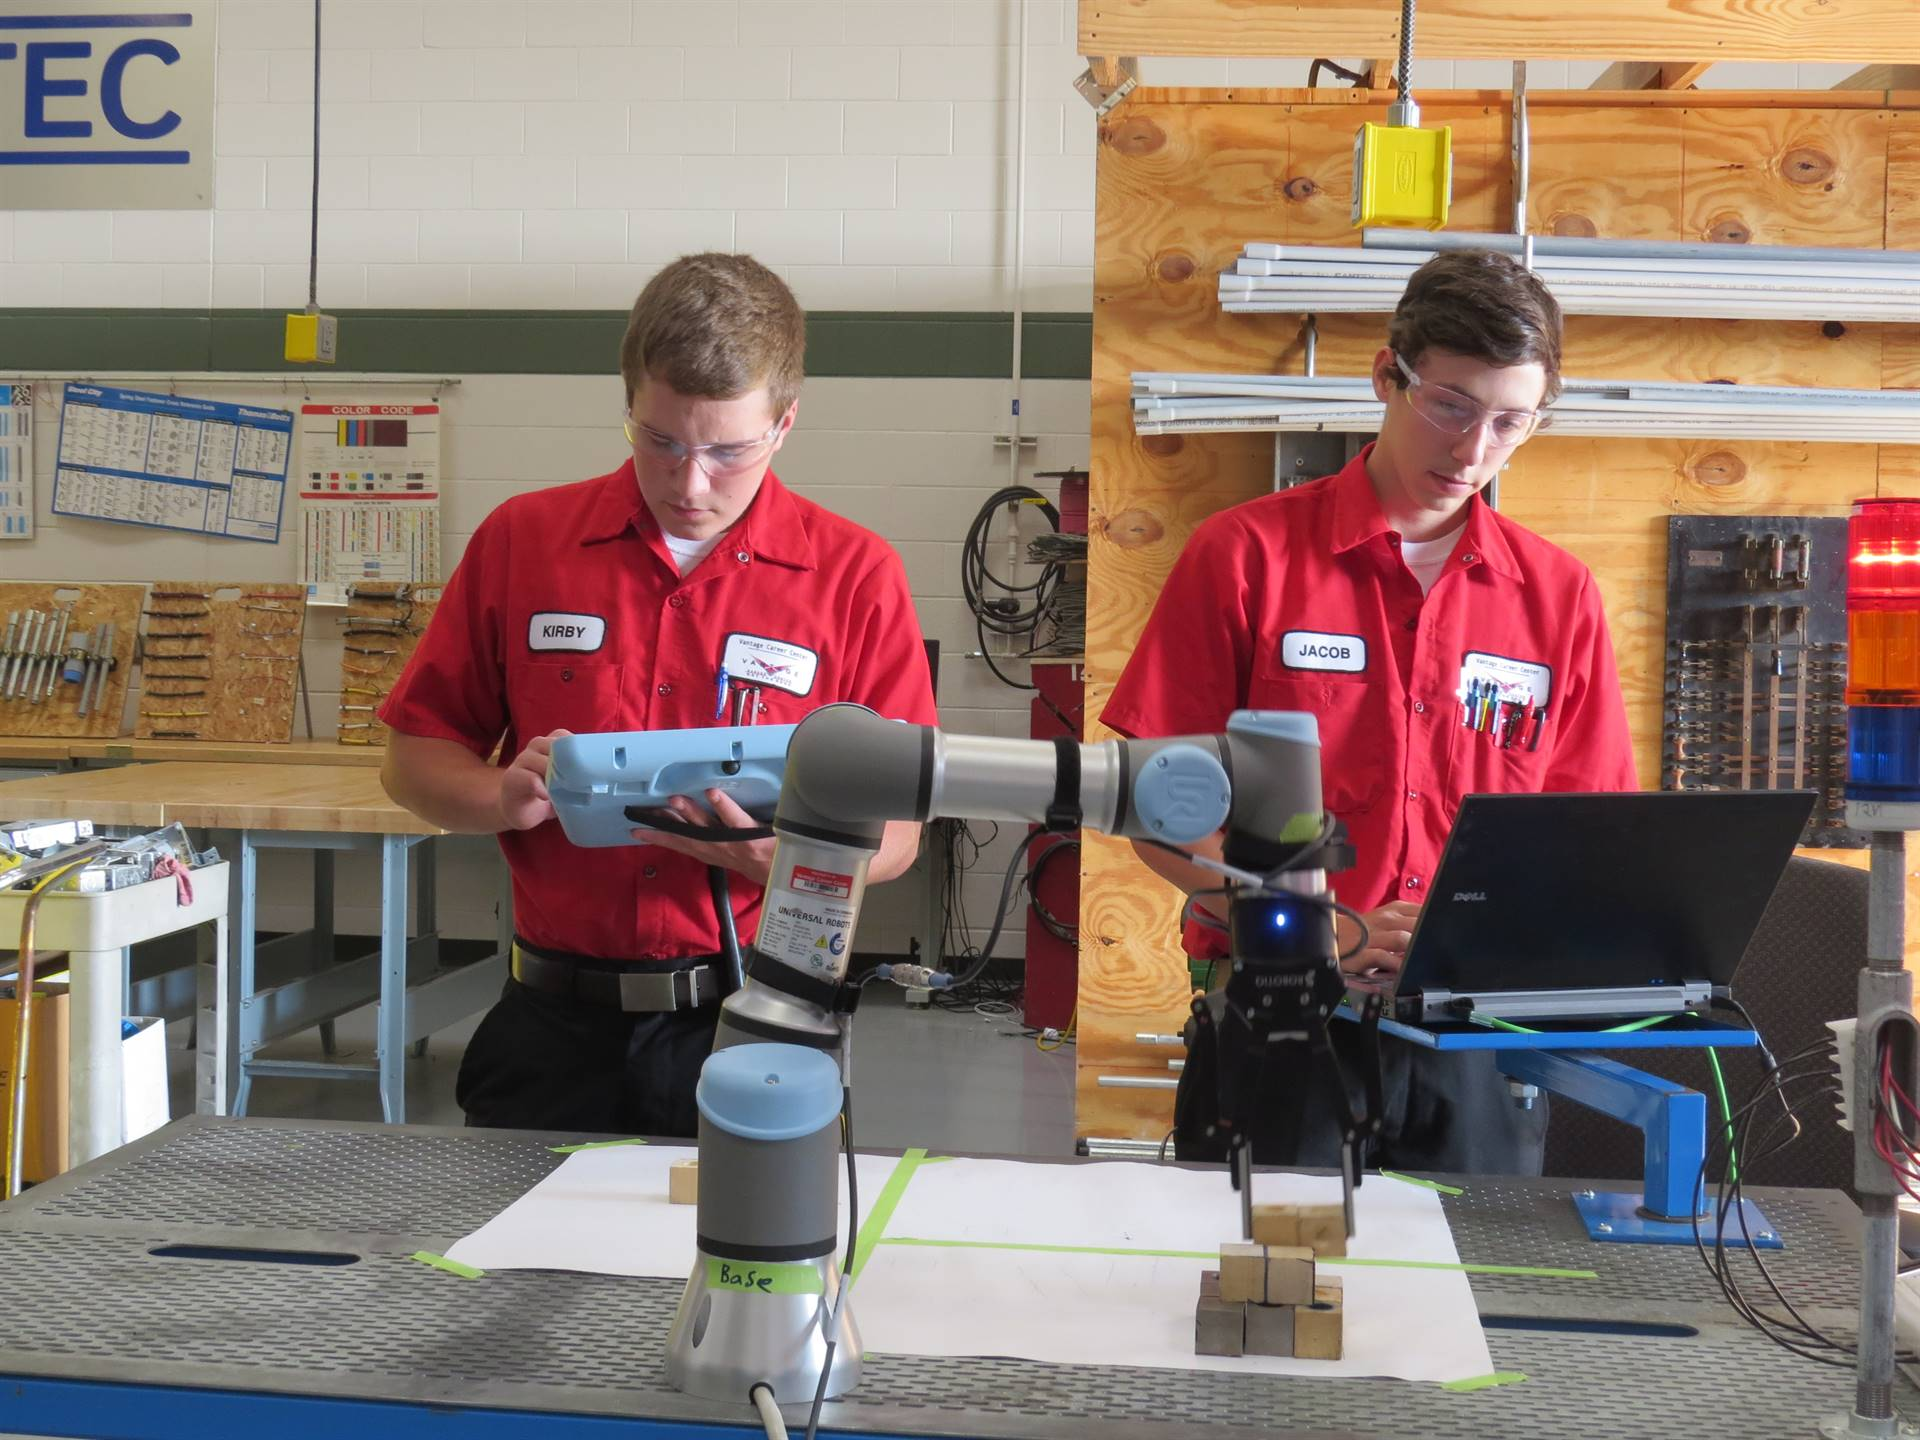 Two male Electricity students programming a robotic arm